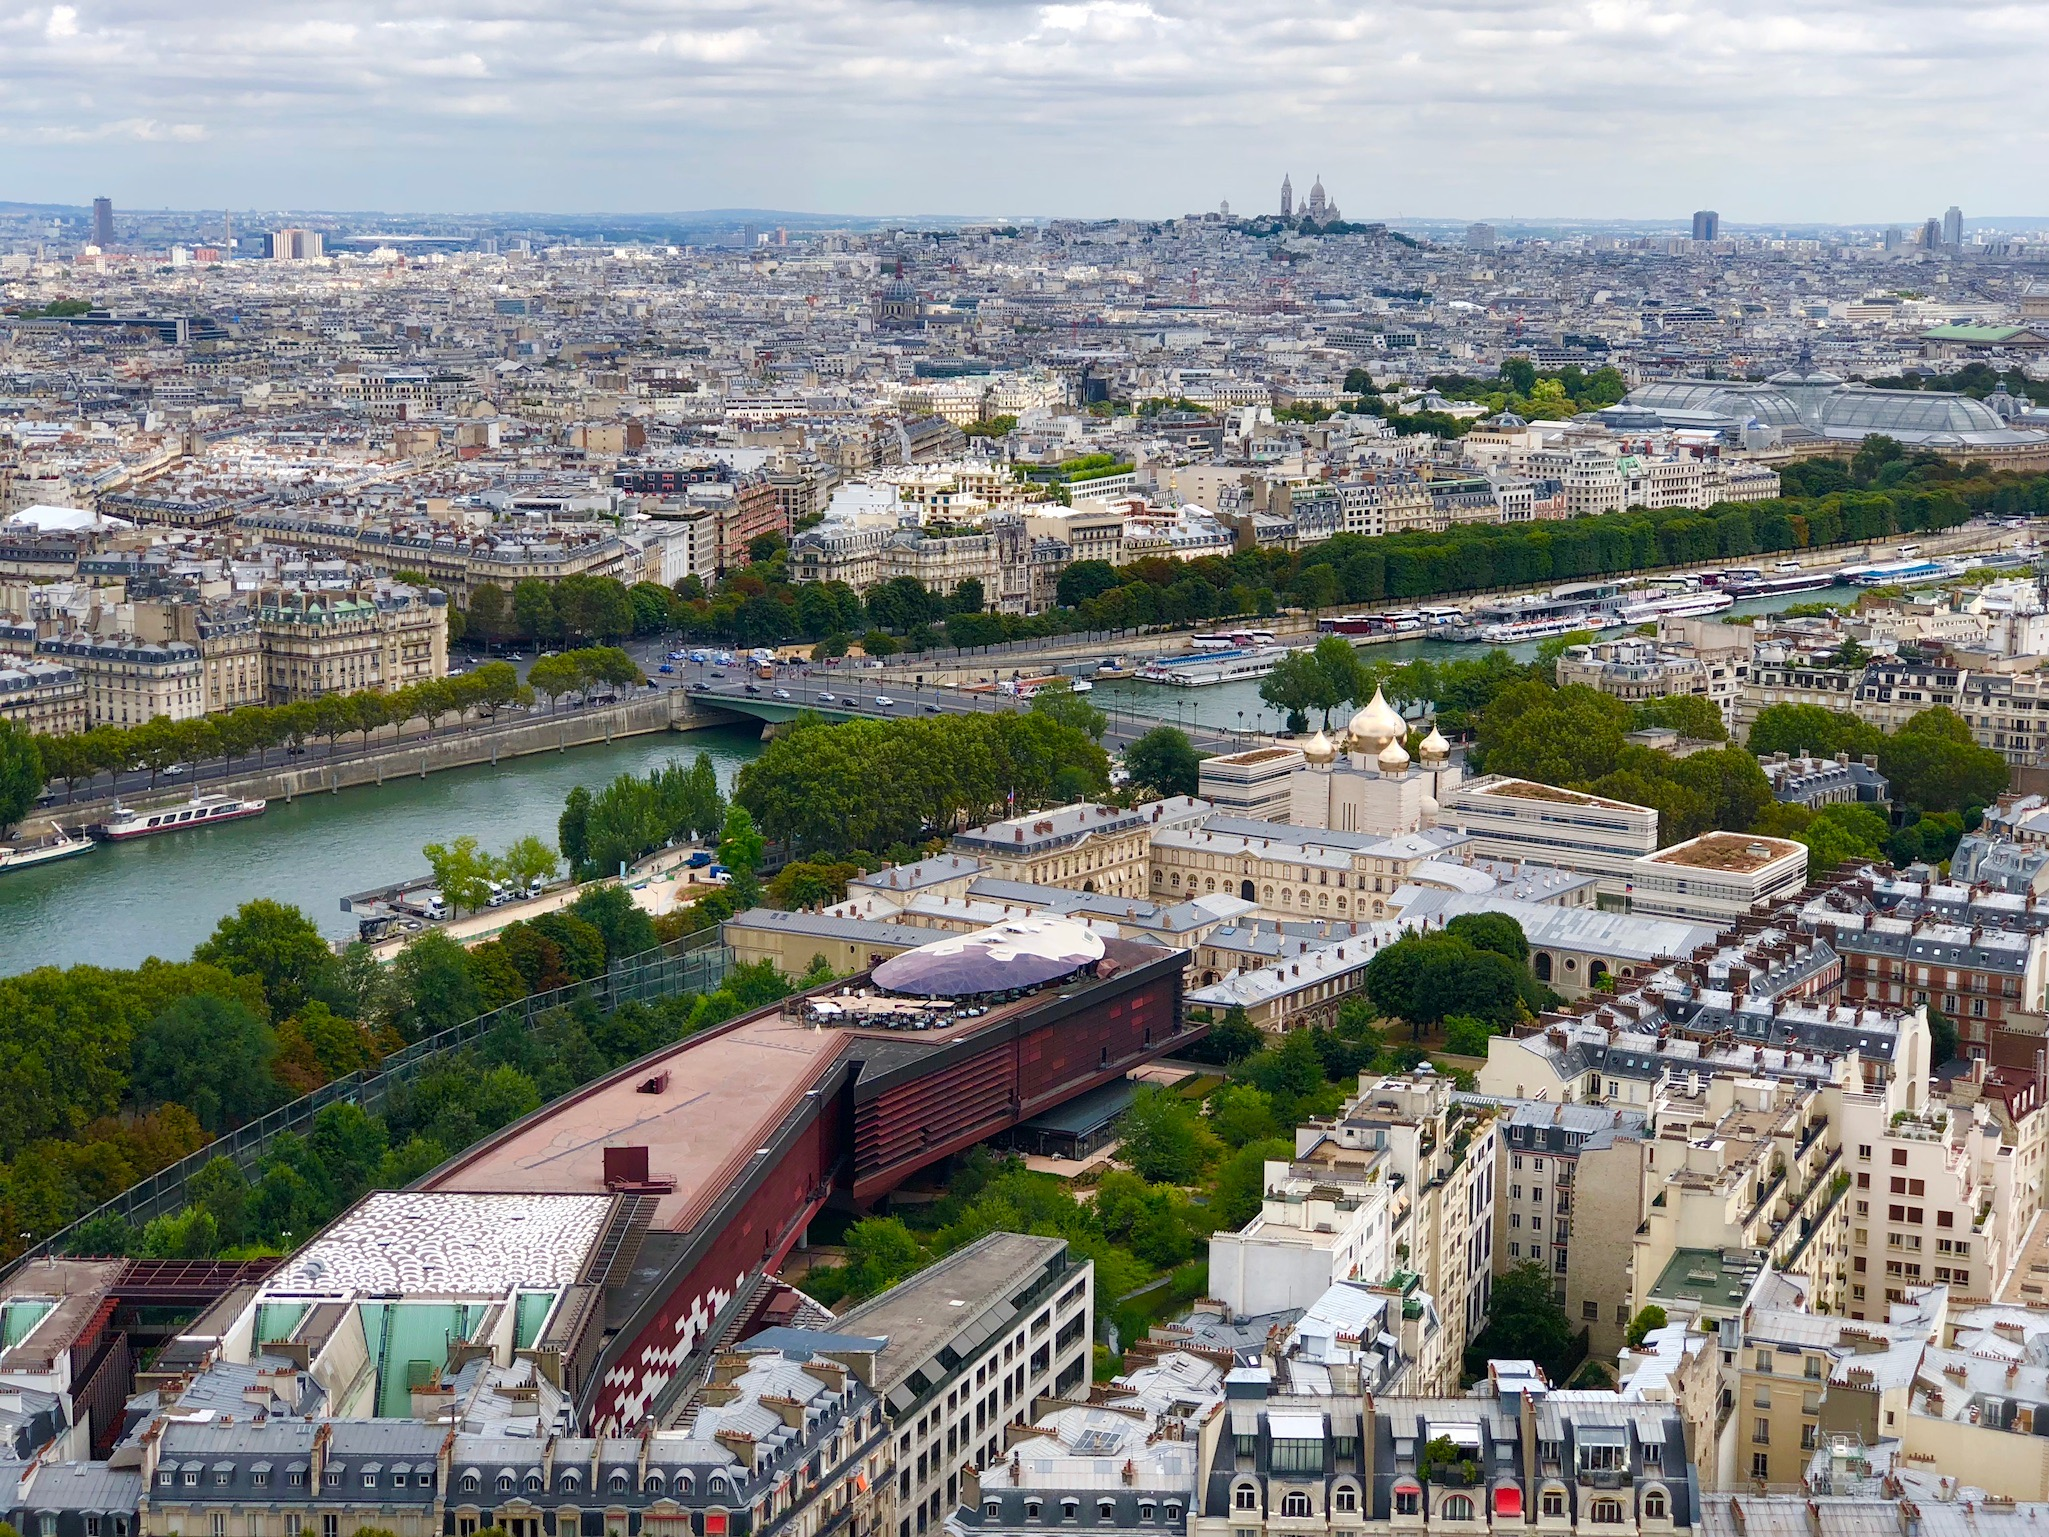 Paris viewed from the Eiffel Tower's second floor, with the Musée du Quai Branly, Russian Orthodox Center, & Sacre Coeur in the distance